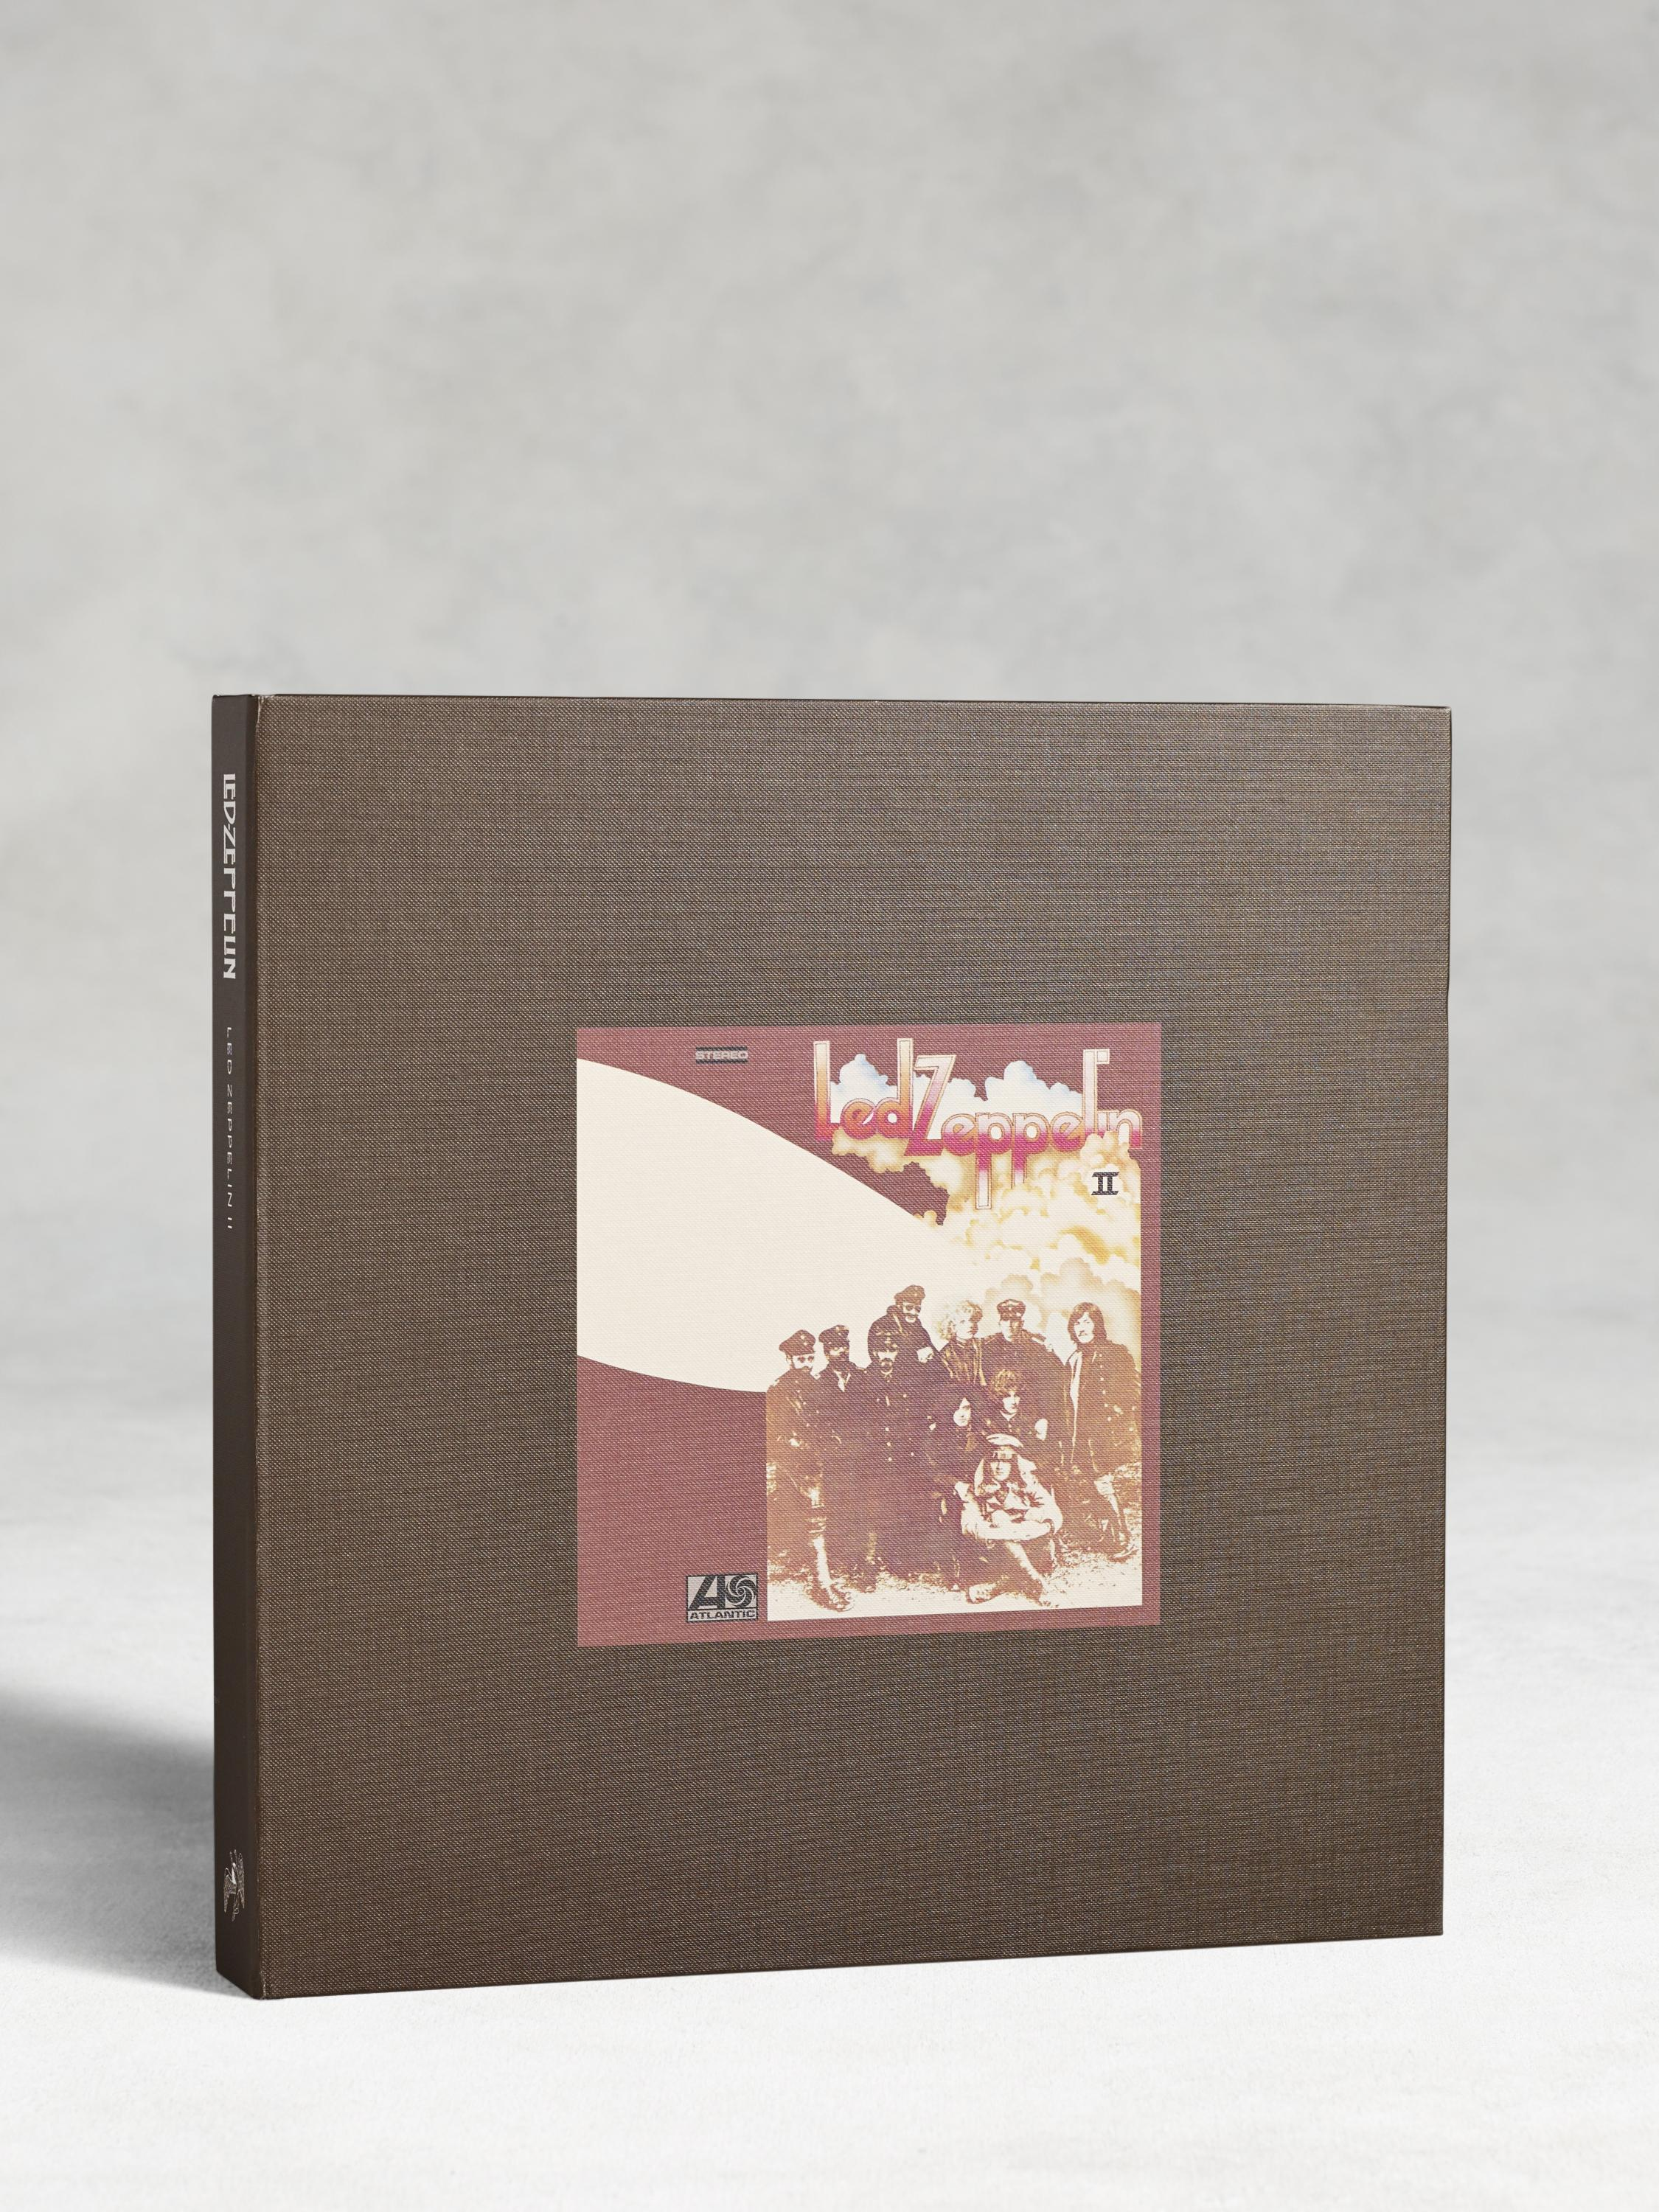 Led Zeppelin - Led Zeppelin II Super Deluxe Edition Box Set